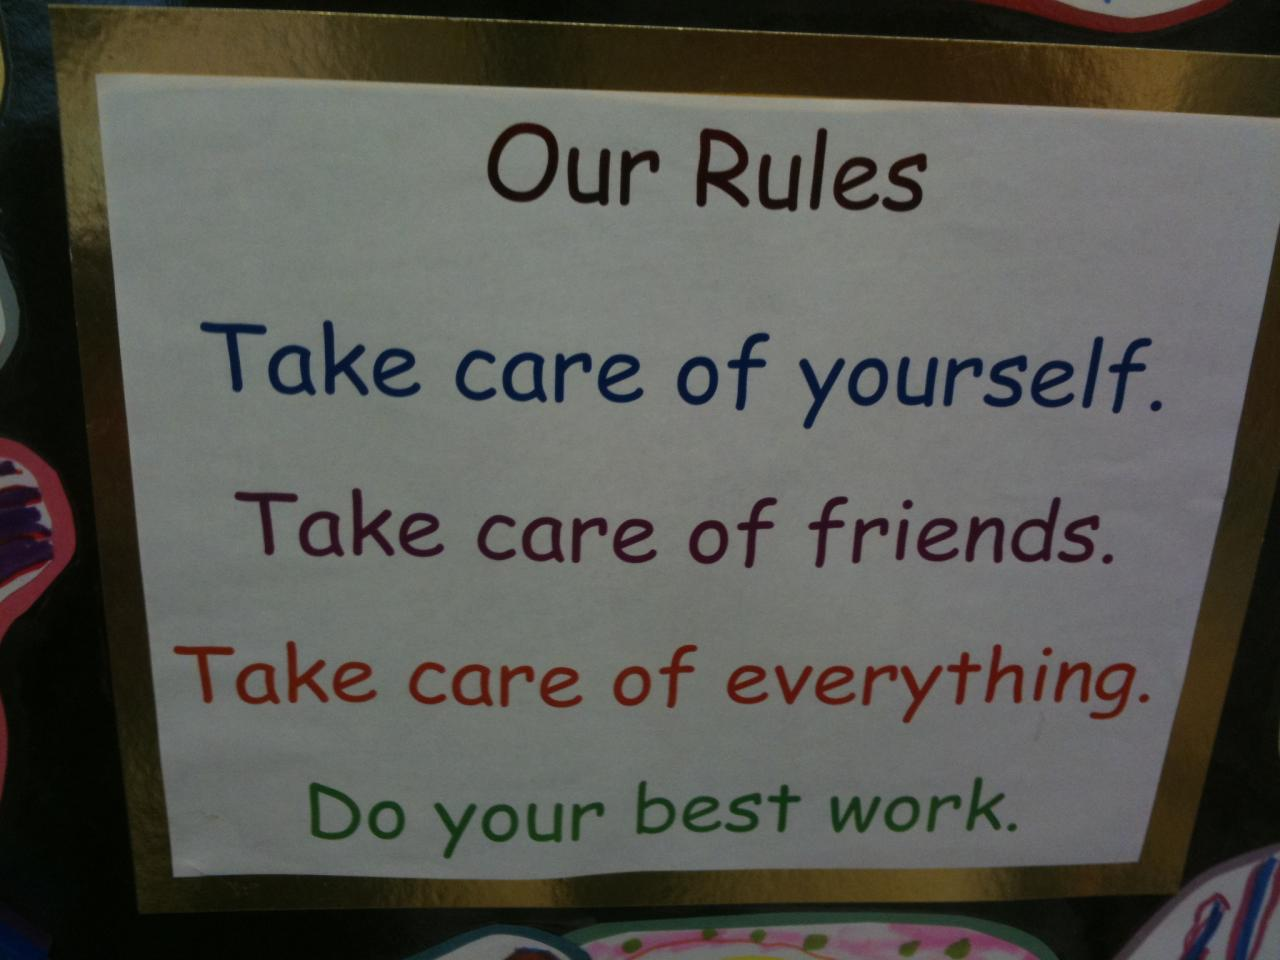 Take care of yourself. Take care of friends. Take care of everything. Do your best work.